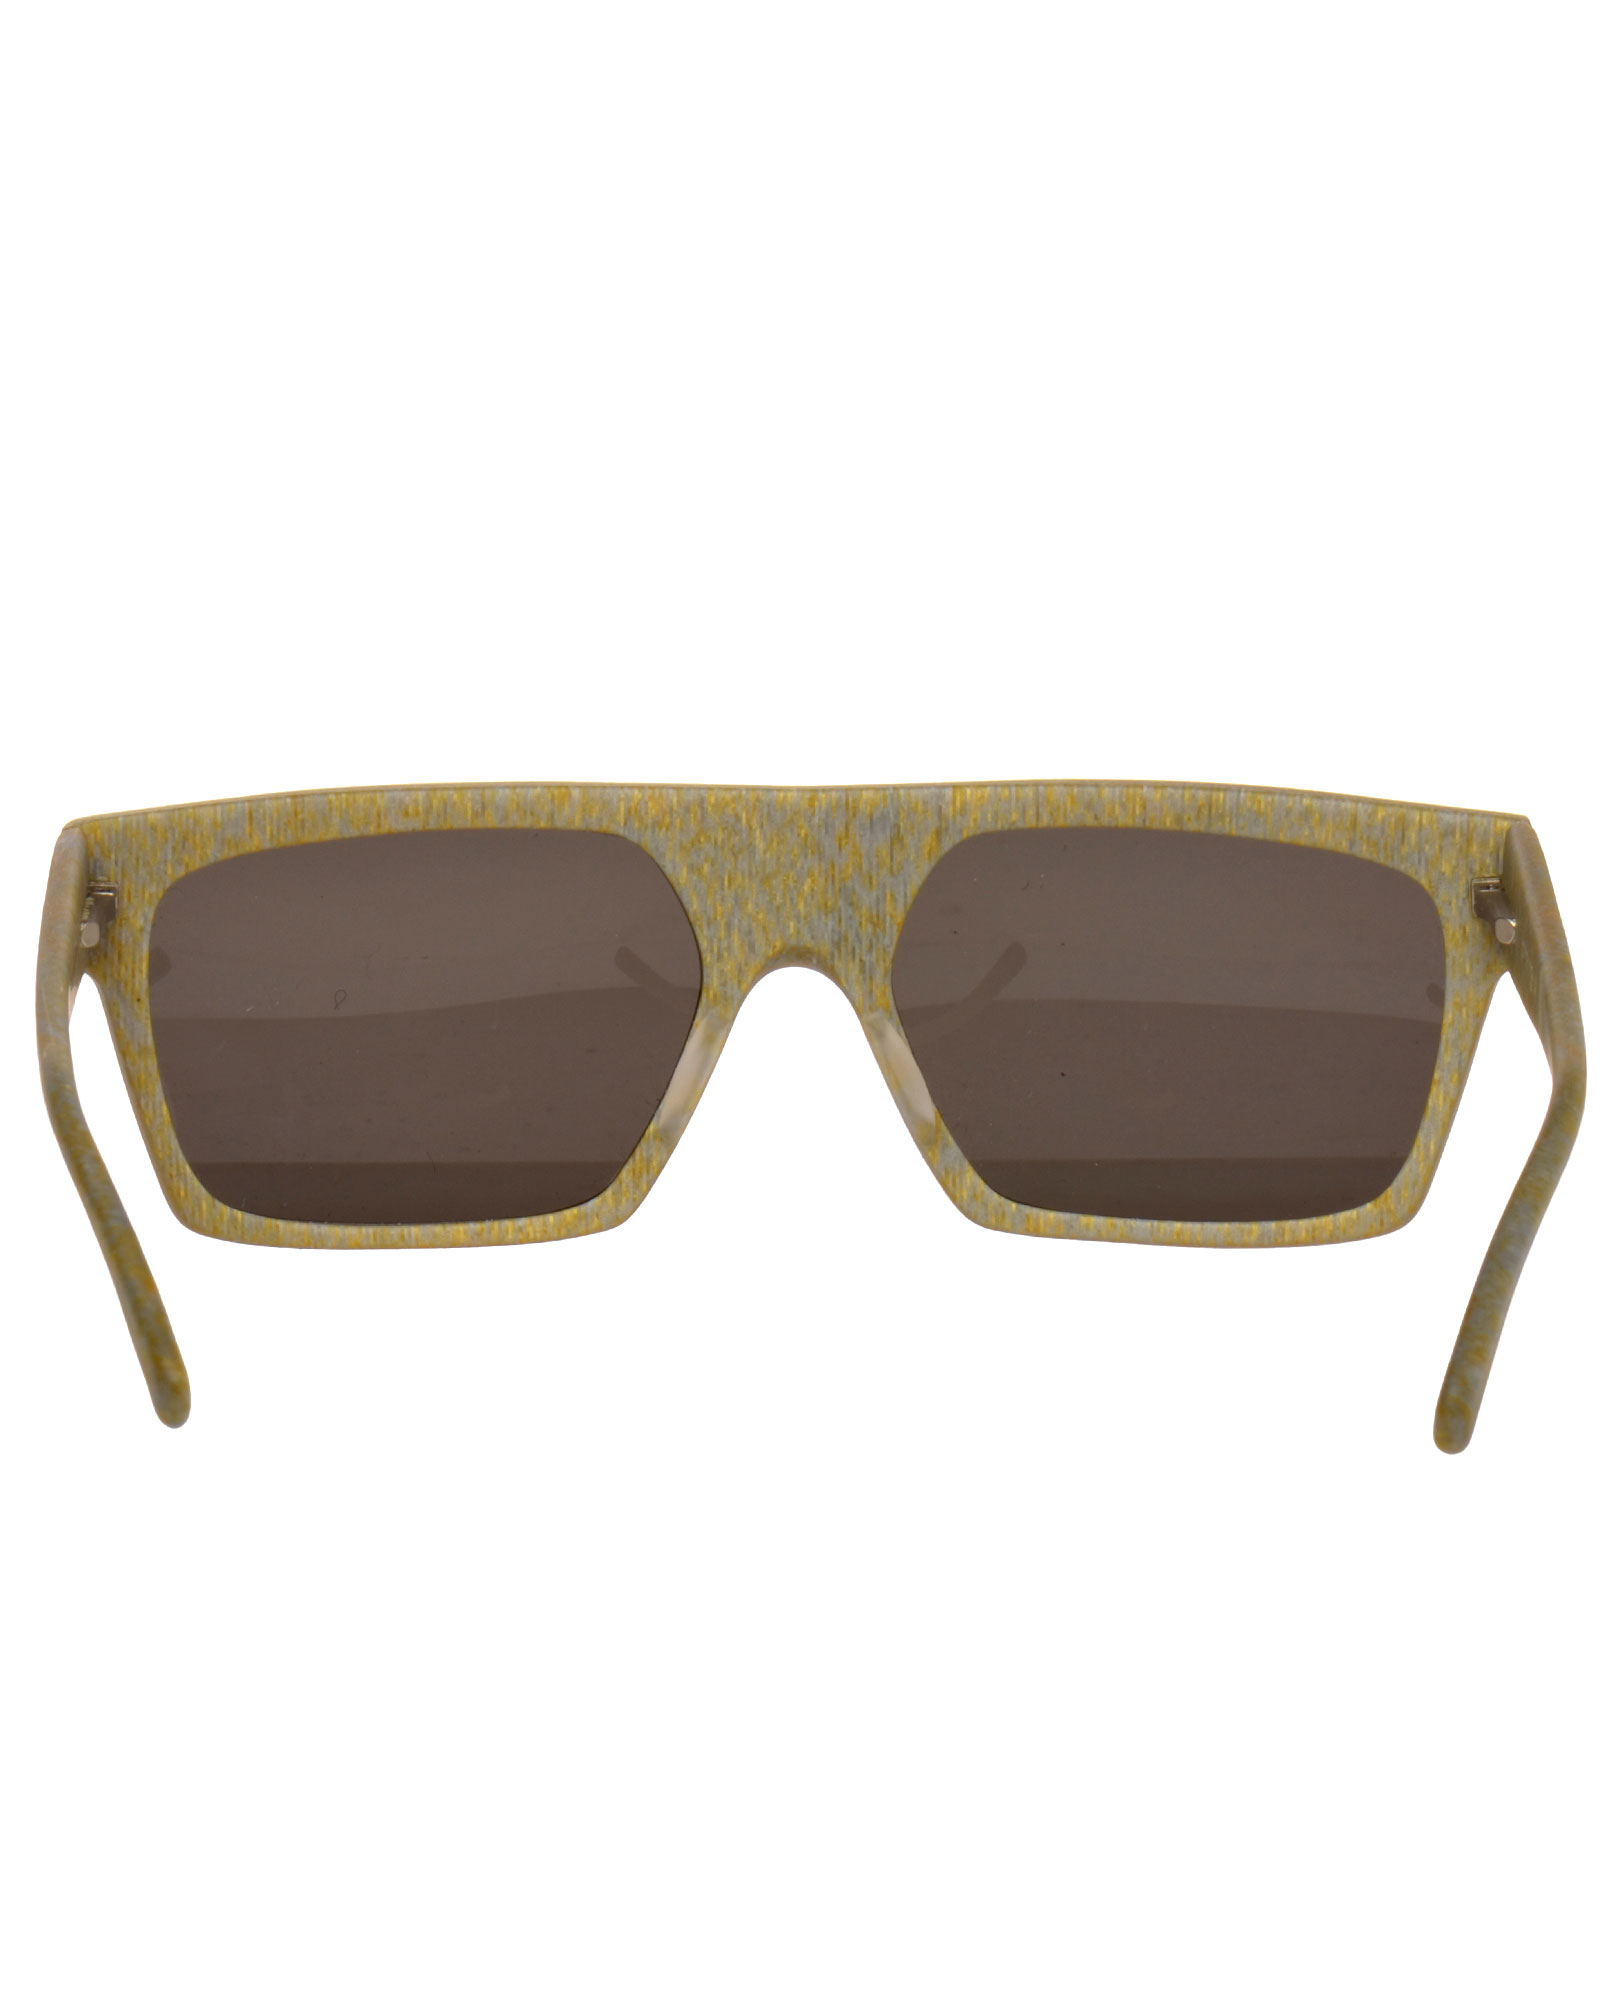 Prism Byron Bay Matte Acetate Framed Sunglasses in Gold (Metallic)